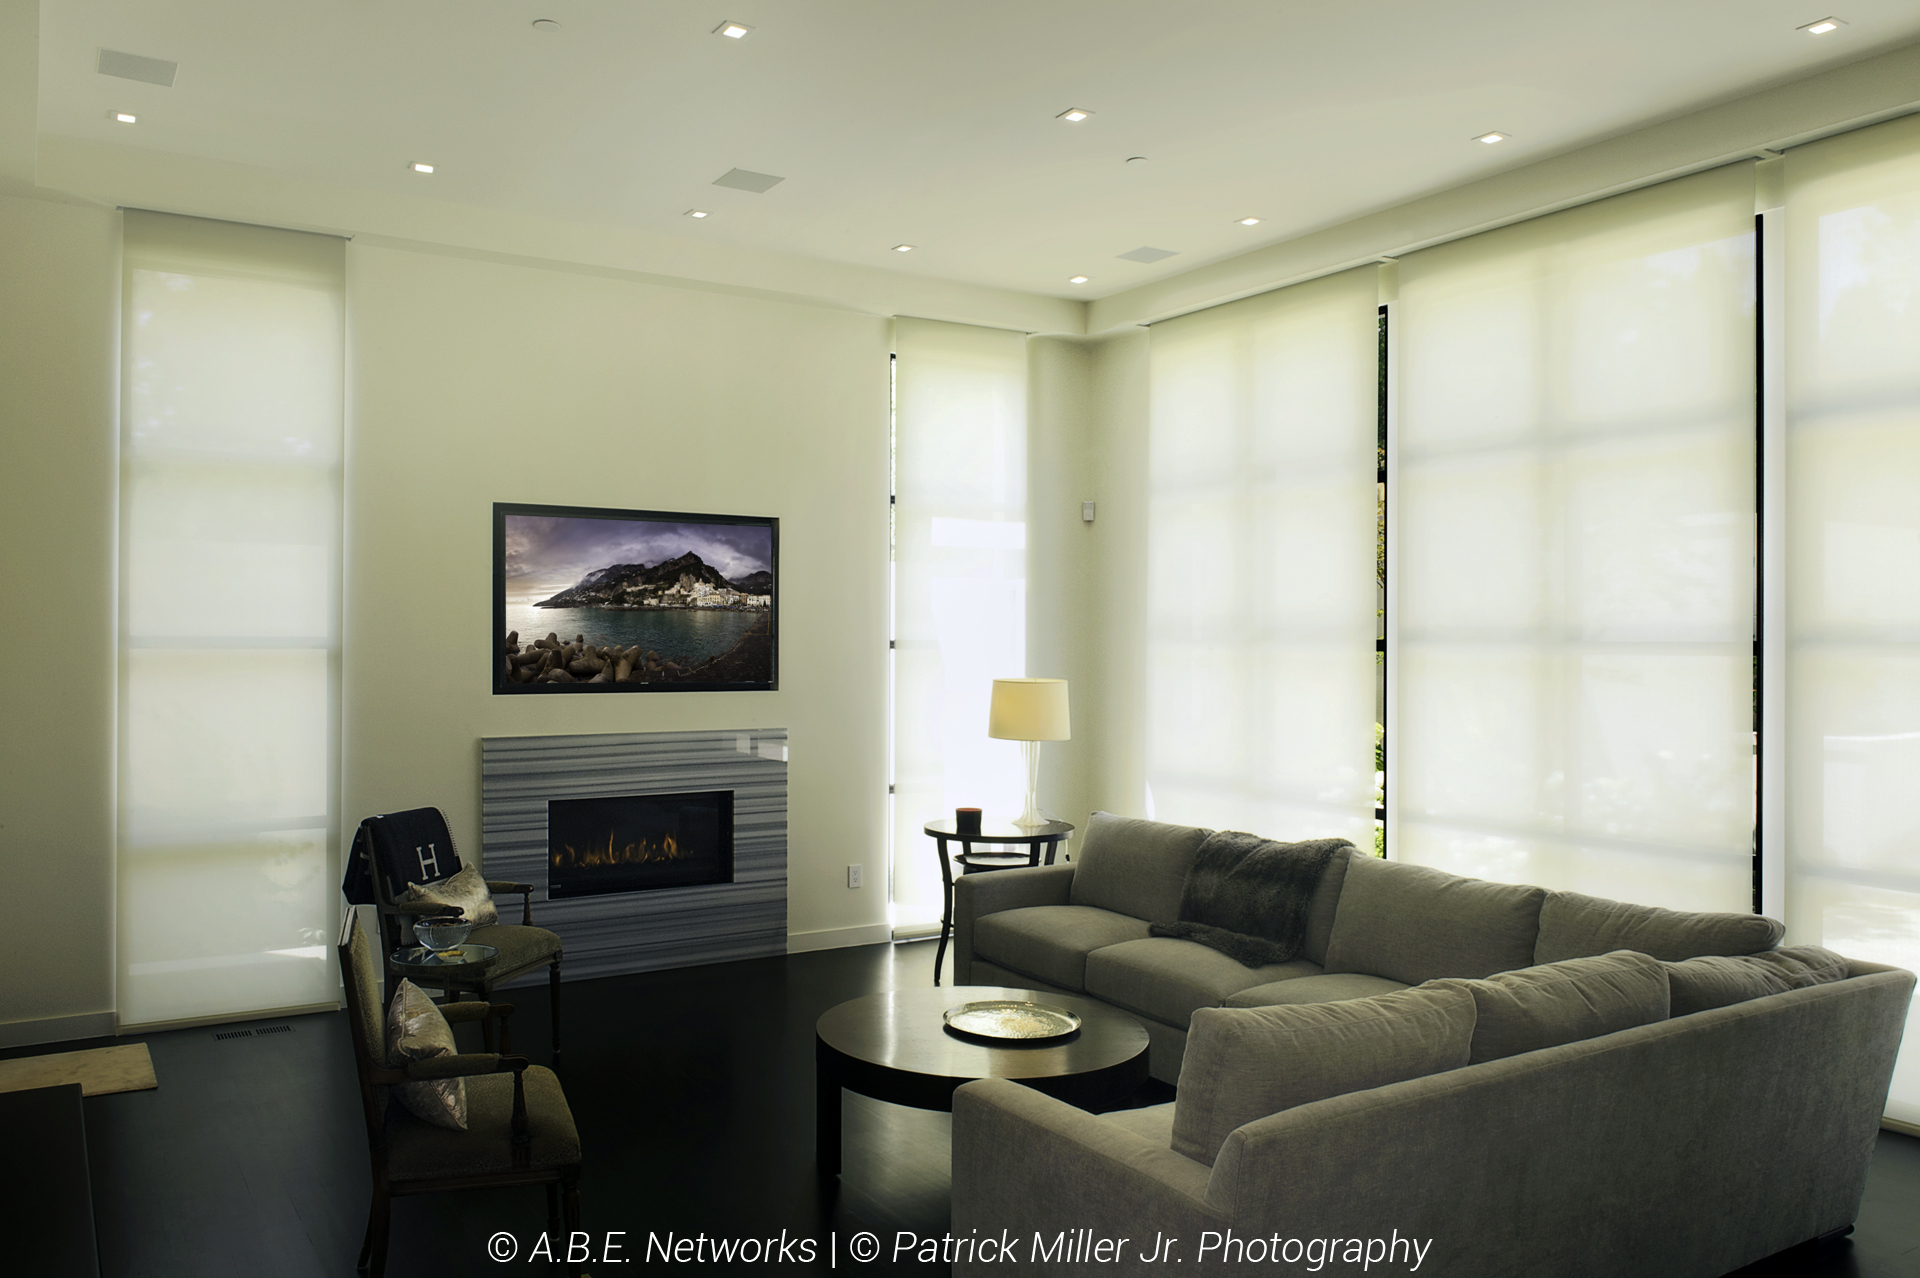 Sonance In-Ceiling Architectural Speakers_In-Wall Niche TV_Lutron Smart Home Lights and Shades_Closed